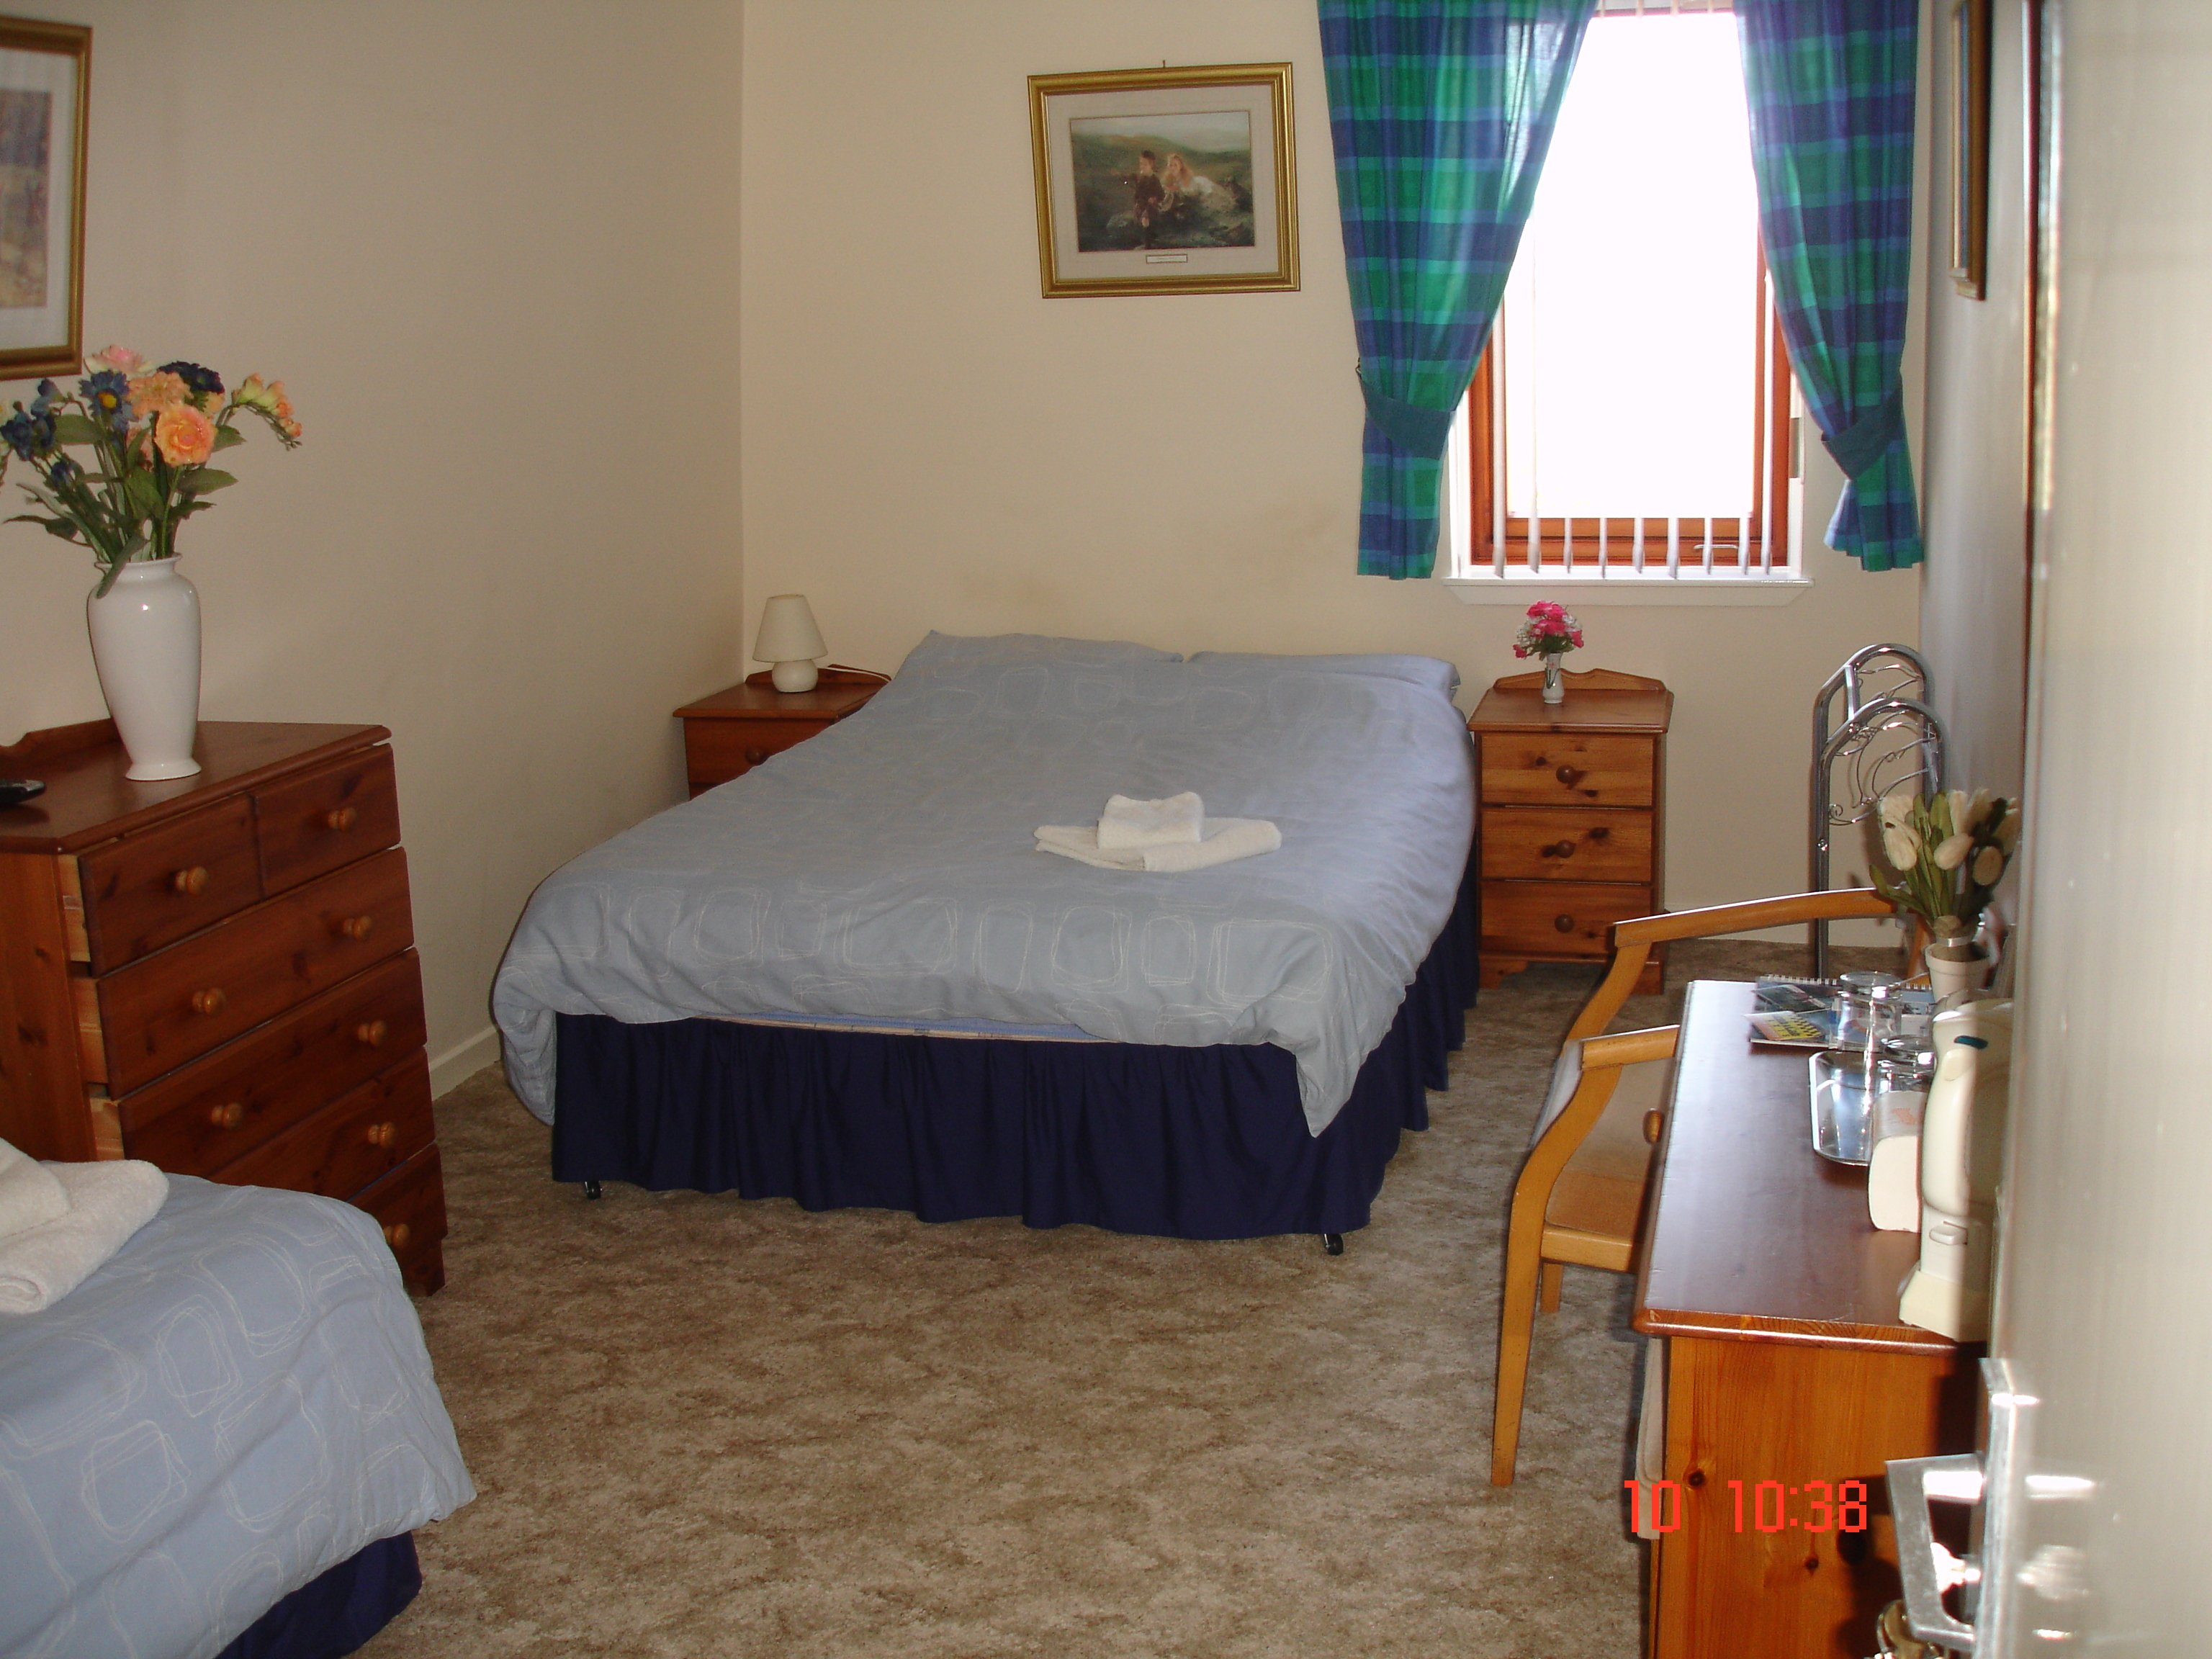 room with 2 beds and wooden furniture